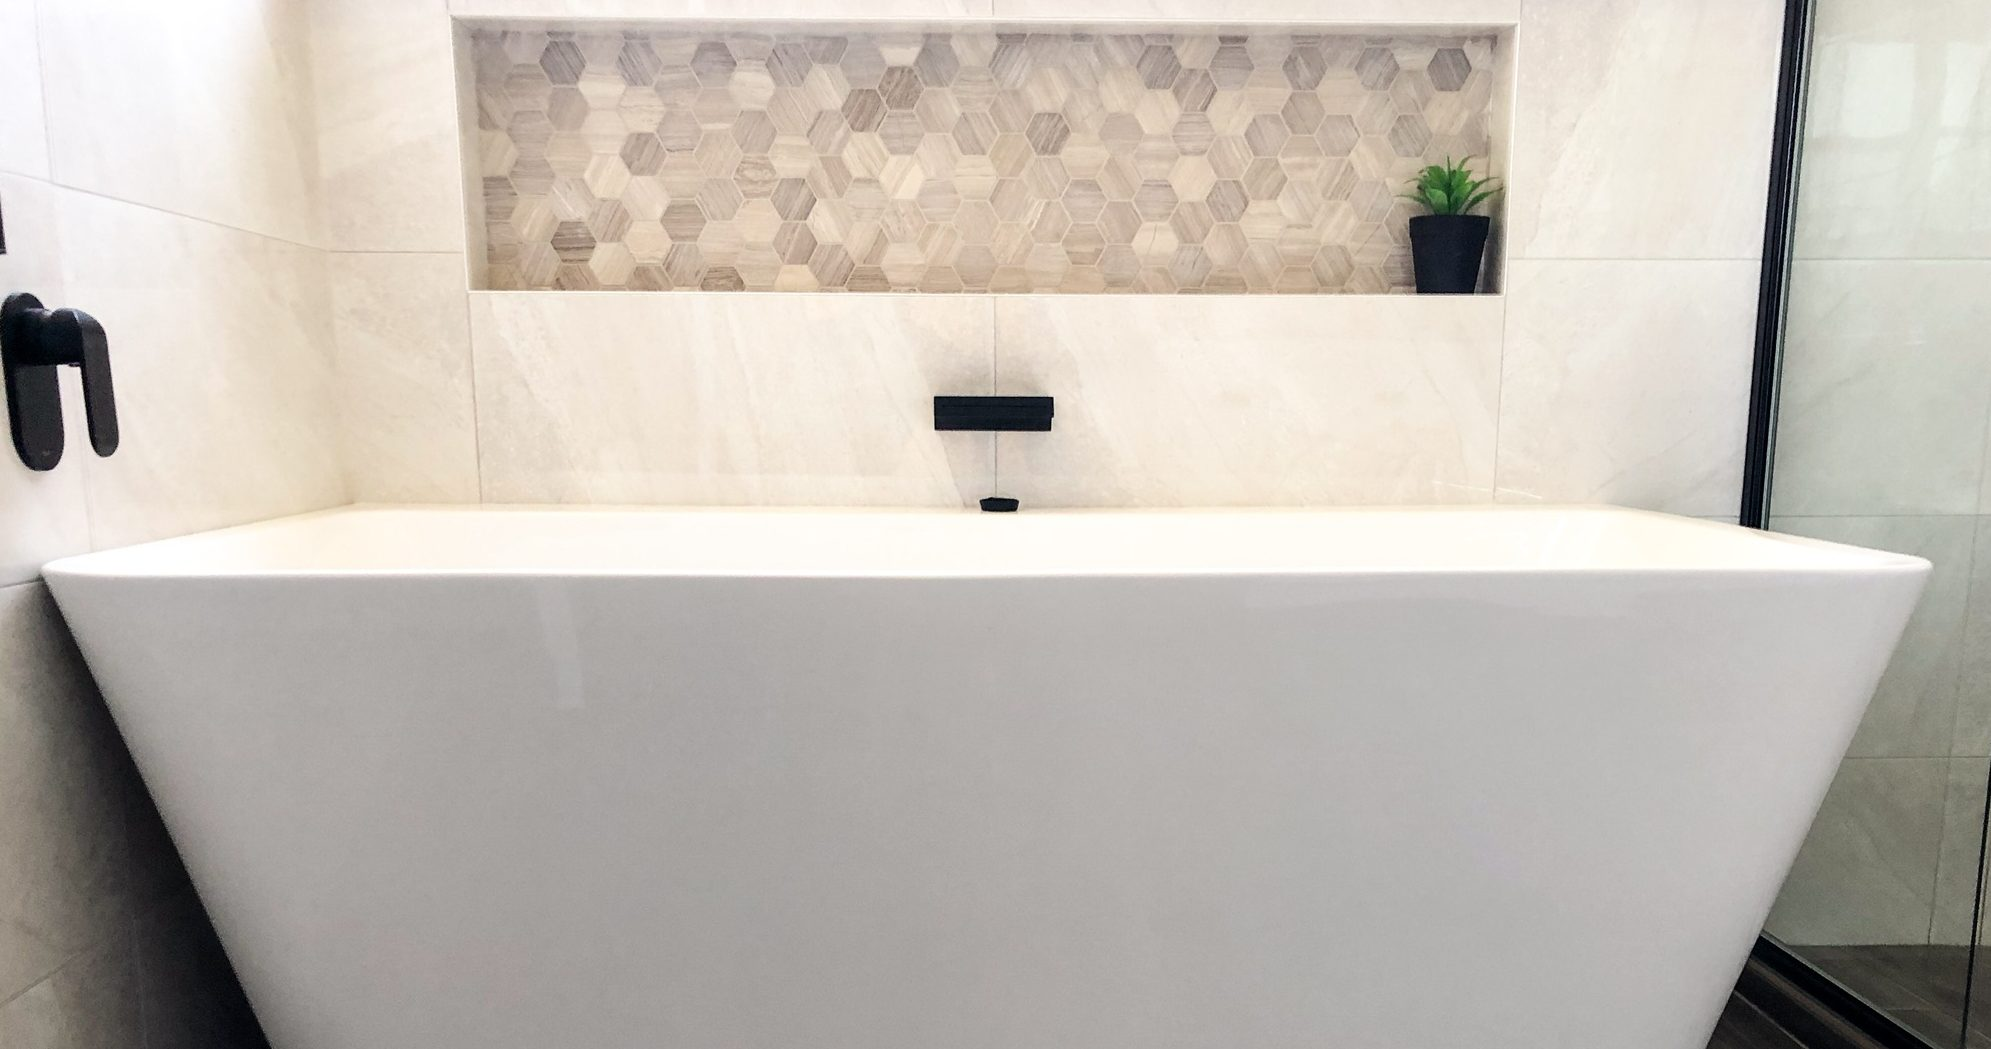 Gorgeous white wall faced free standing bath with decorative niche